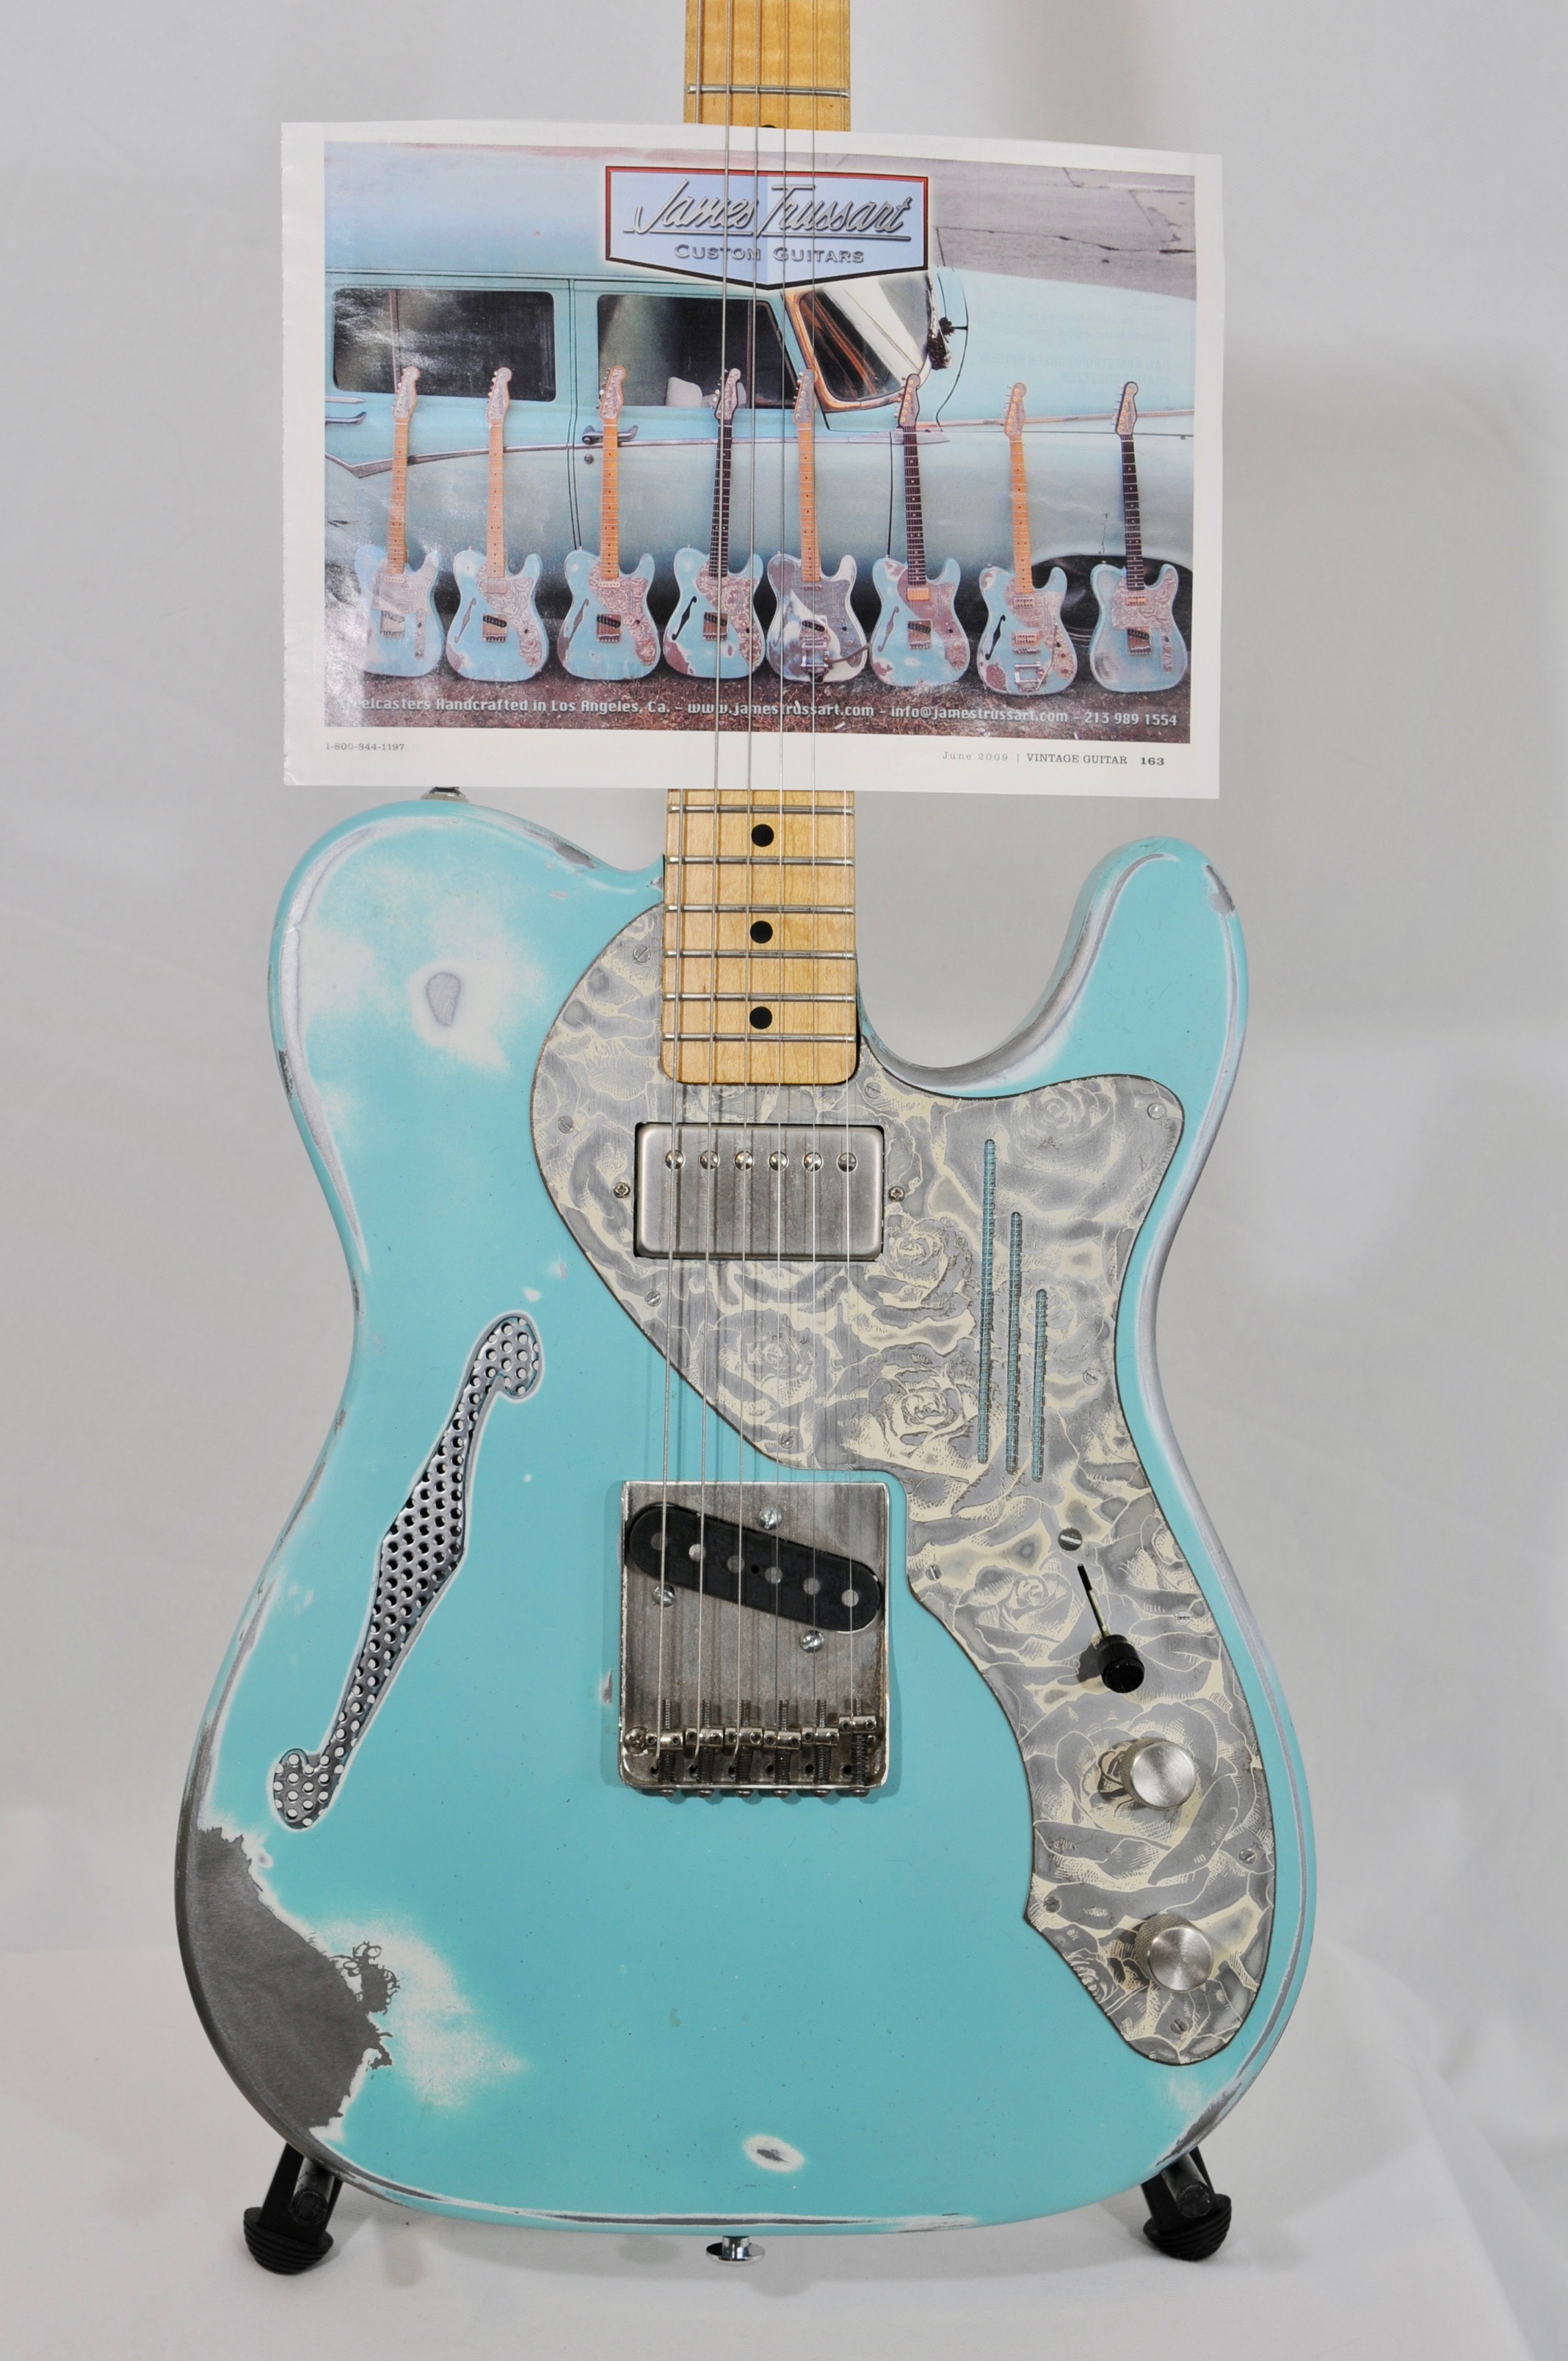 James Trussart Steelcaster Deluxe – USED IN PROMOTIONAL ADVERTISEMENT!